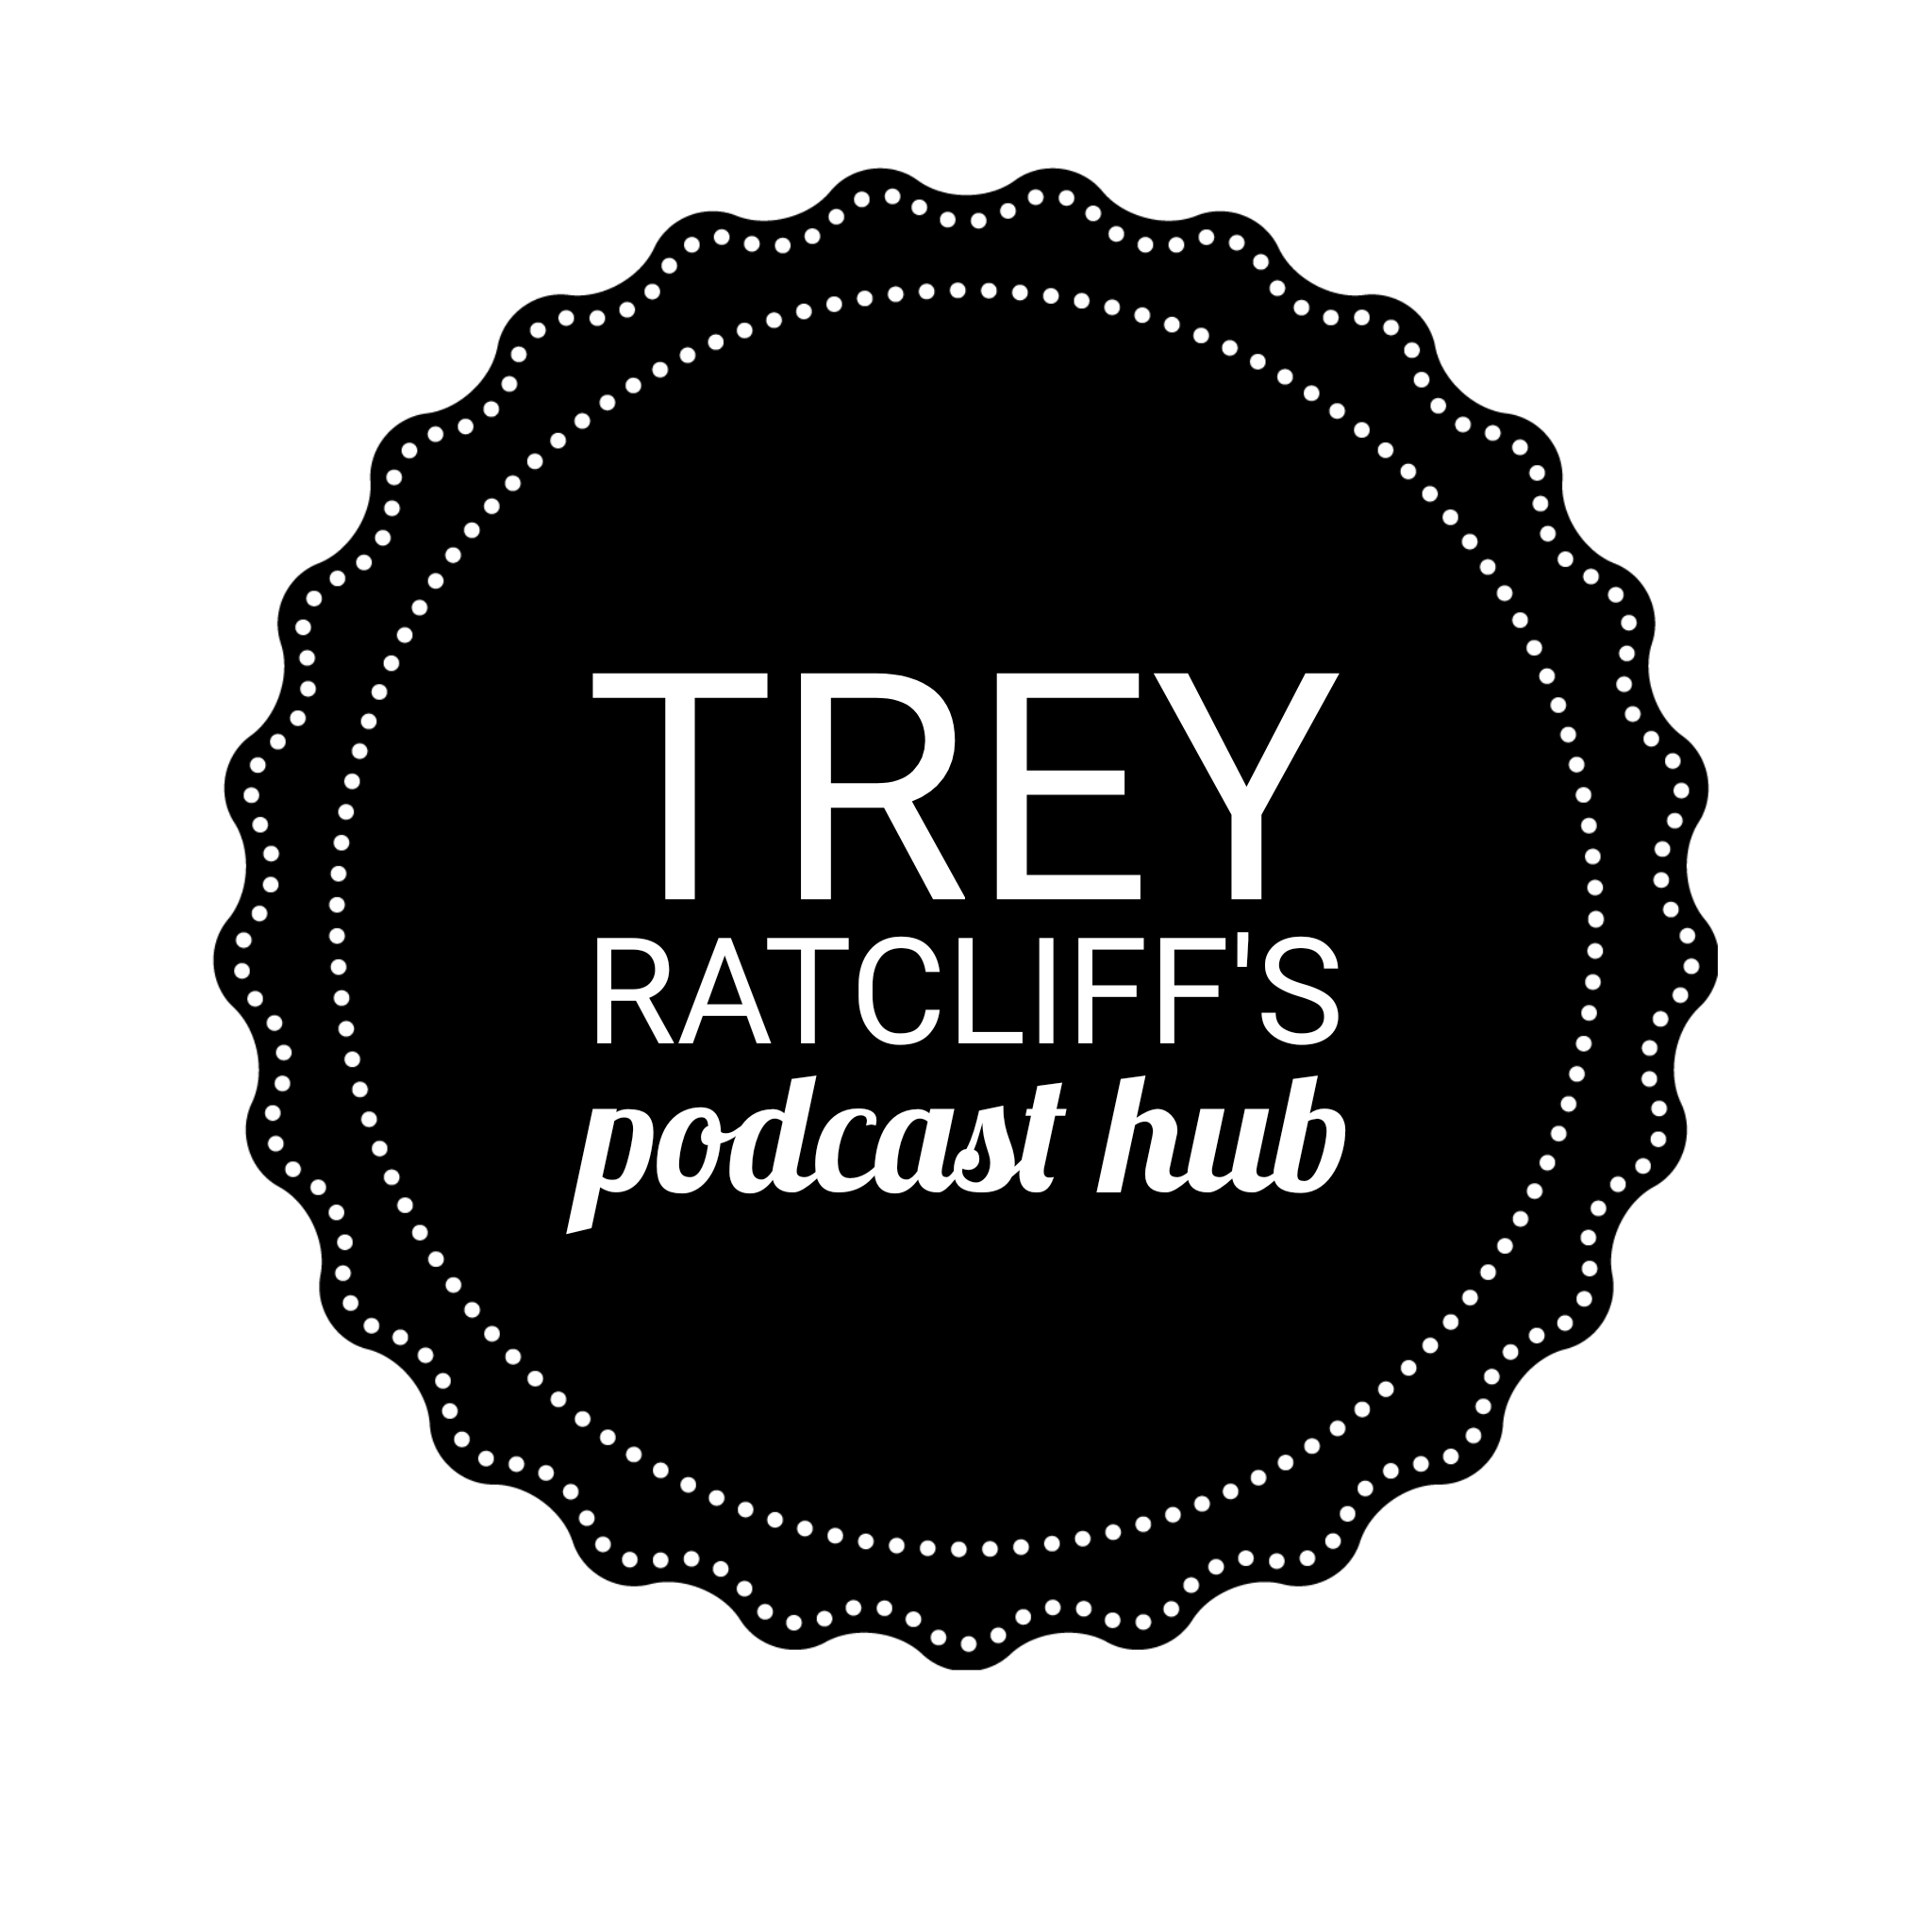 Trey Ratcliff Podcasts